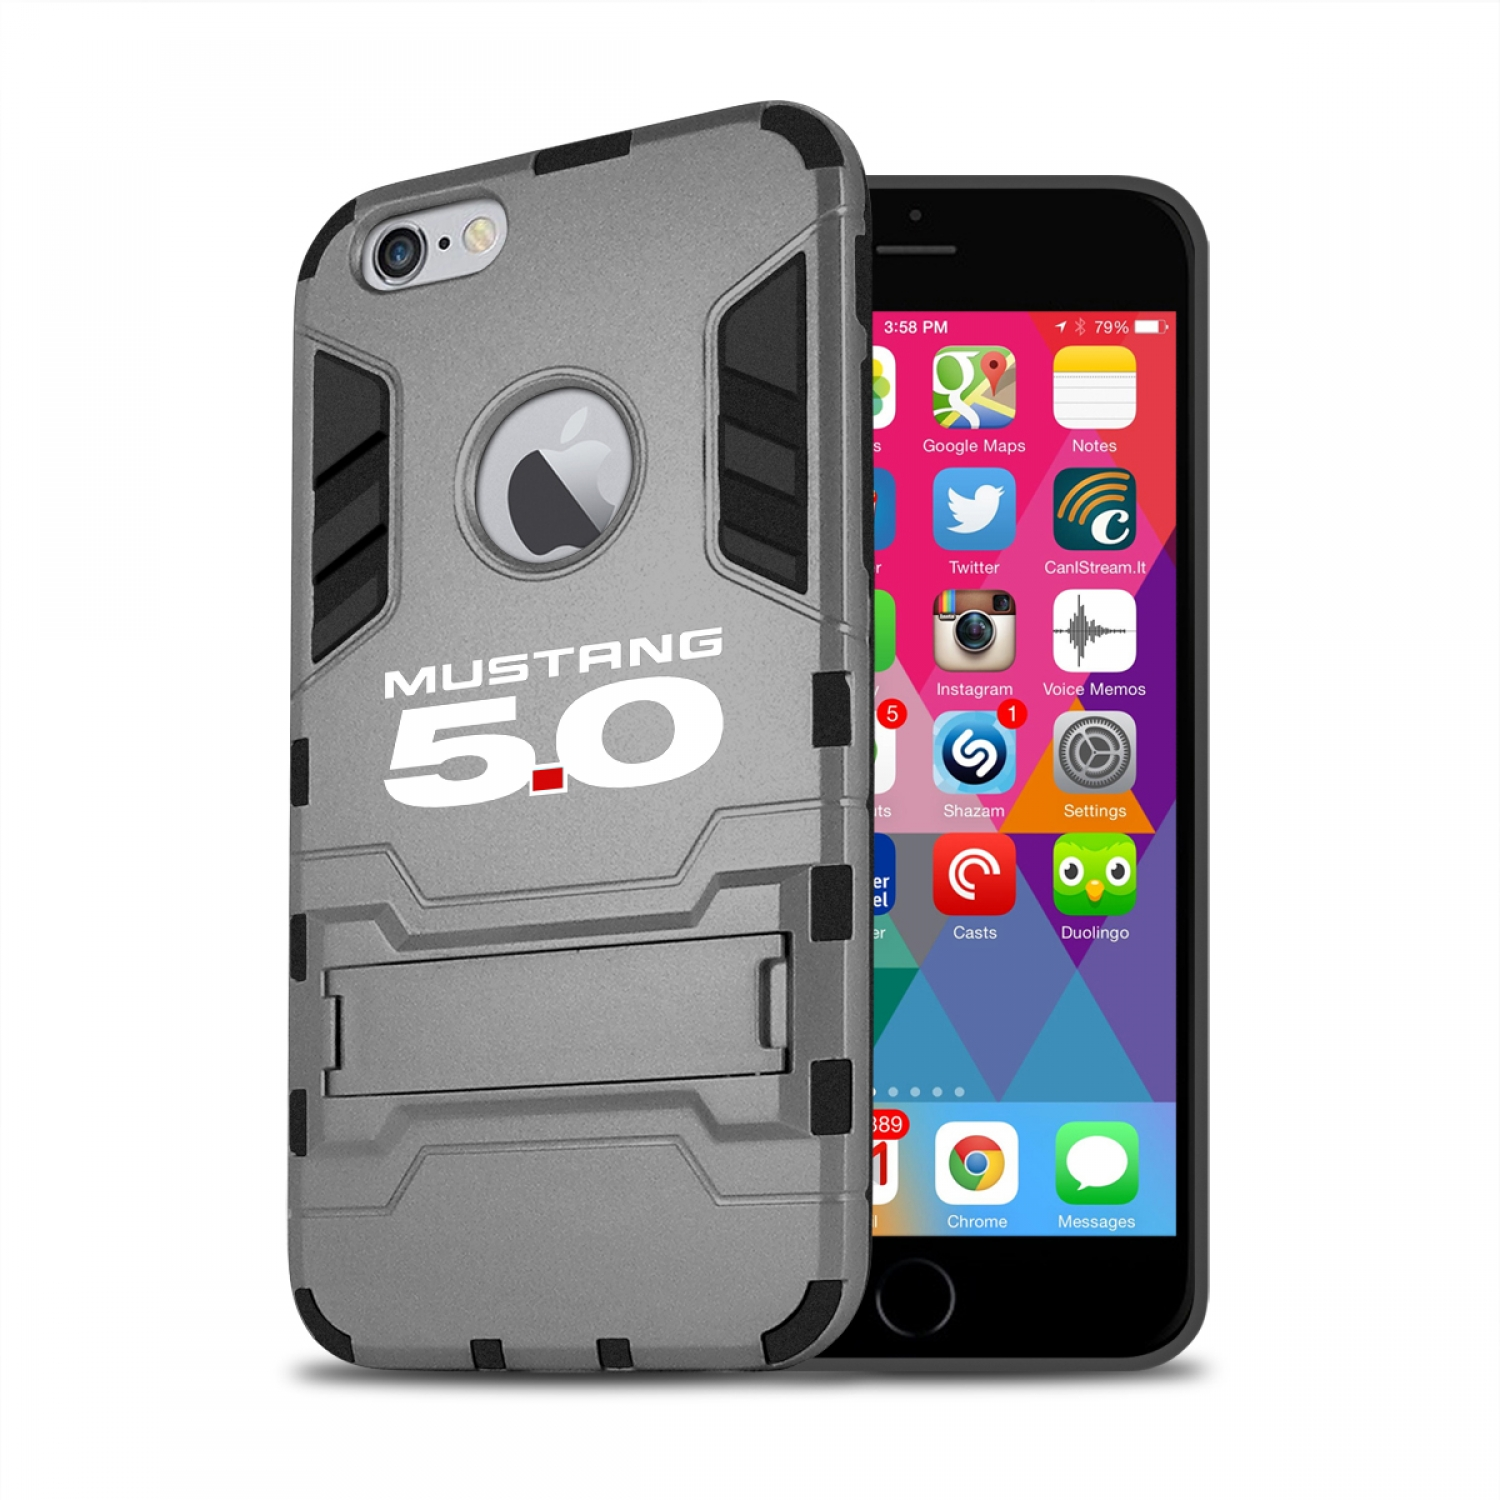 Ford Mustang 5.0 iPhone 6 6s Shockproof TPU ABS Hybrid Dark Gray Phone Case